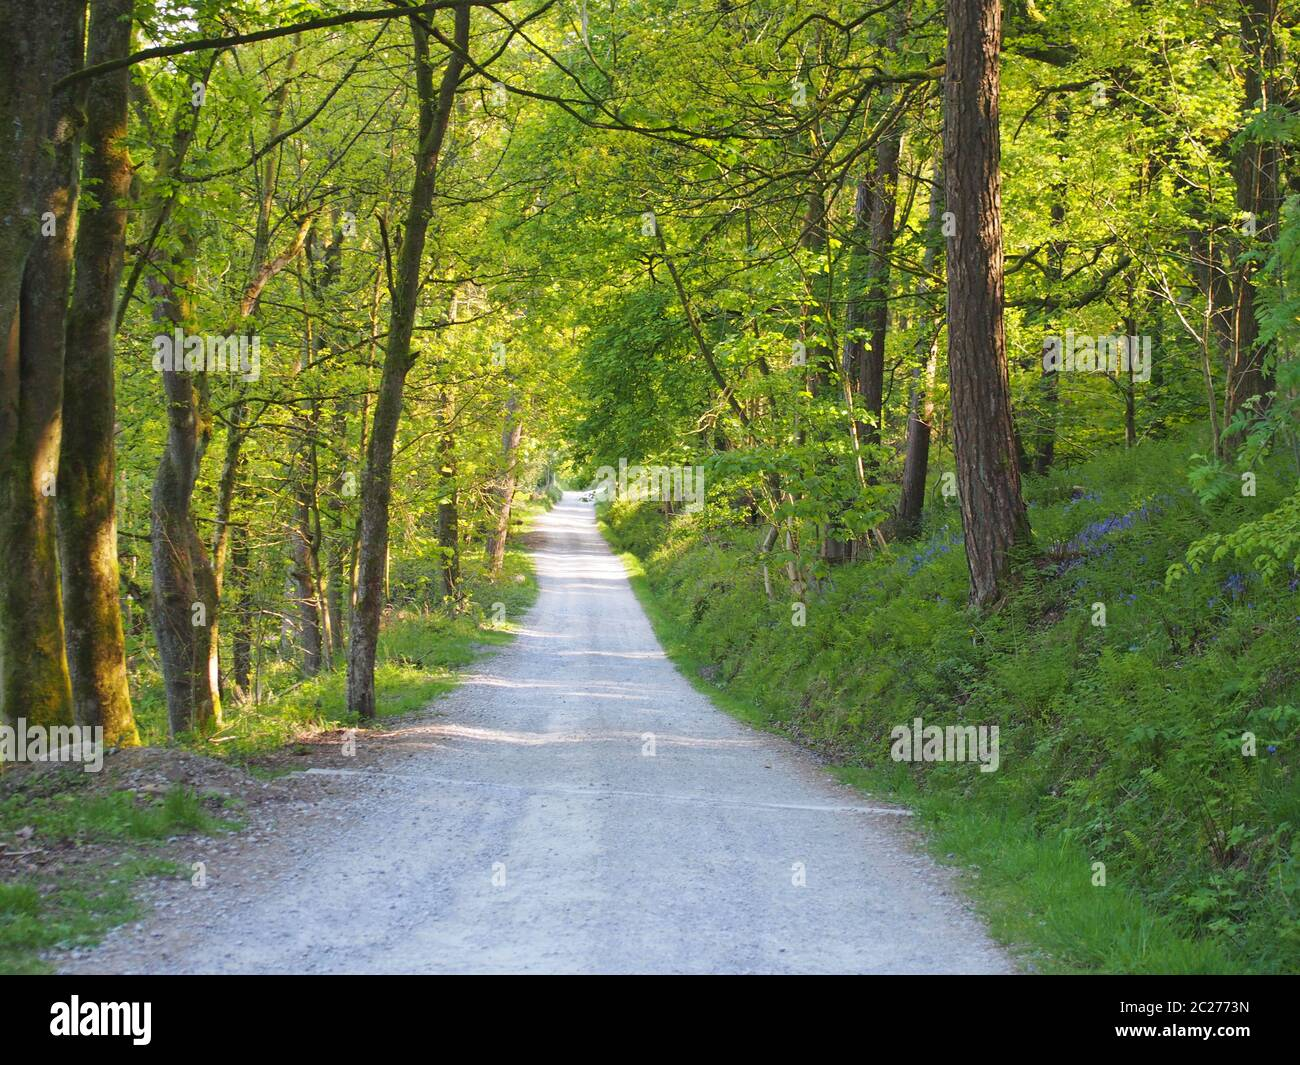 perspective view a narrow country lane running though bright sunlit spring woodland with a surrounding canopy of forest trees Stock Photo